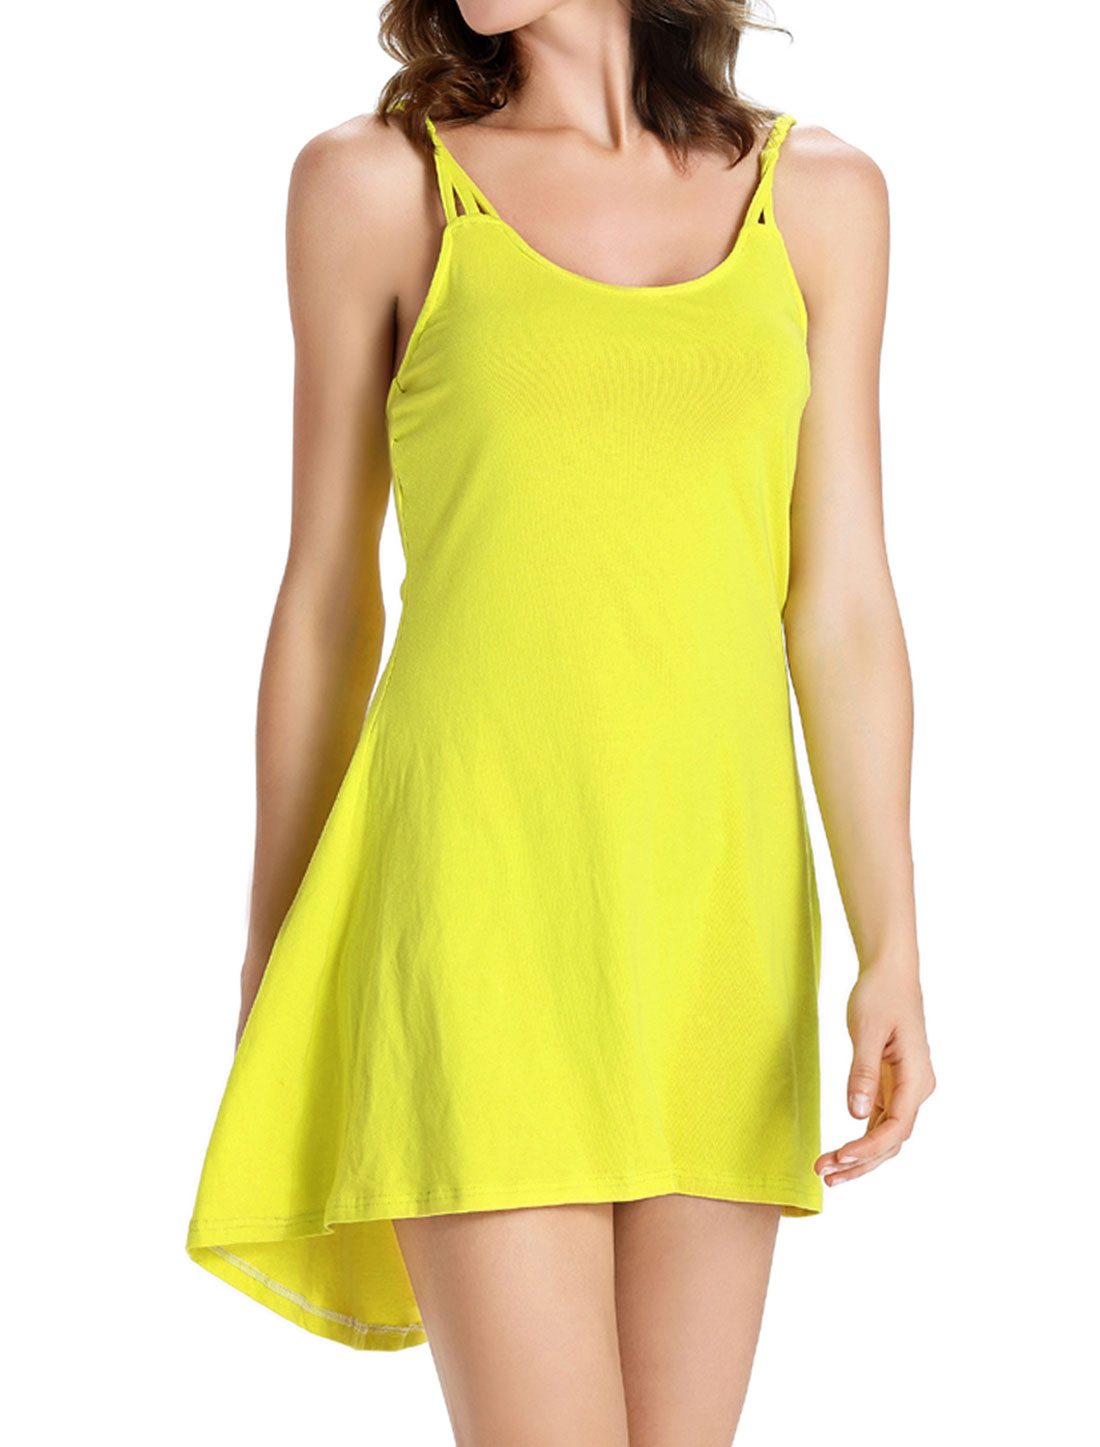 Women Spaghetti Straps Scoop Neck Open Back Tunic Cami Dress Yellow M